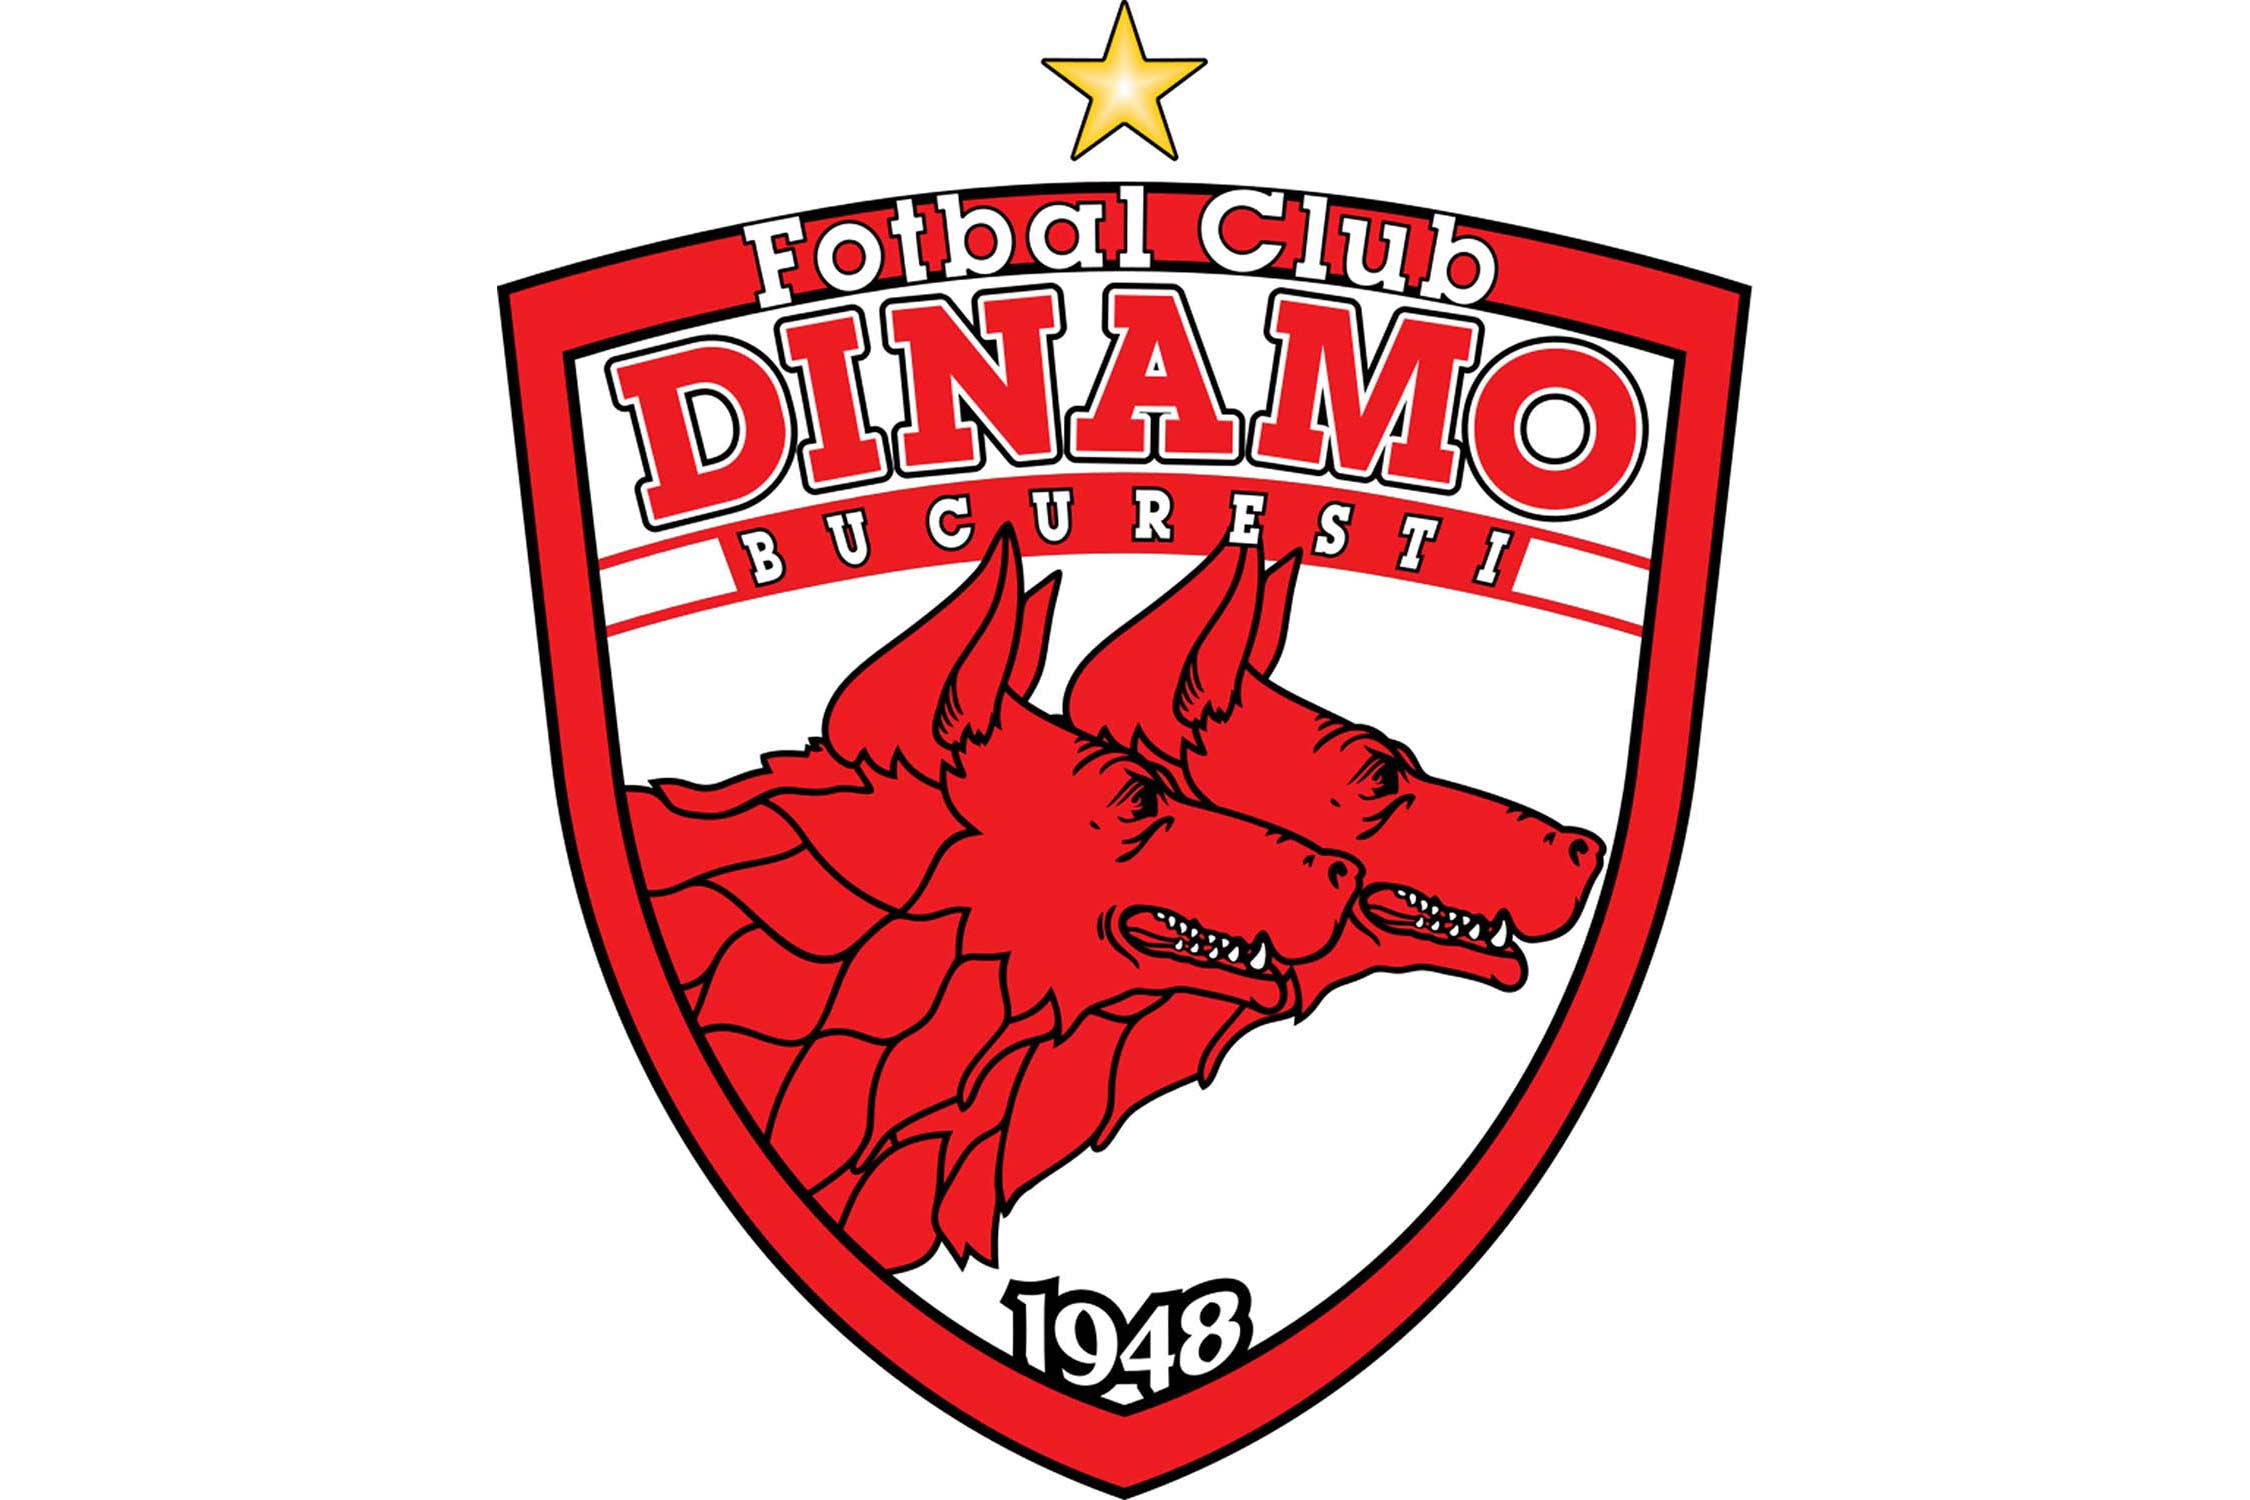 The two red dogs in the club's crest represent Radu and Ion Nunweiller, brothers who played for the club in the 1960s and 70s.